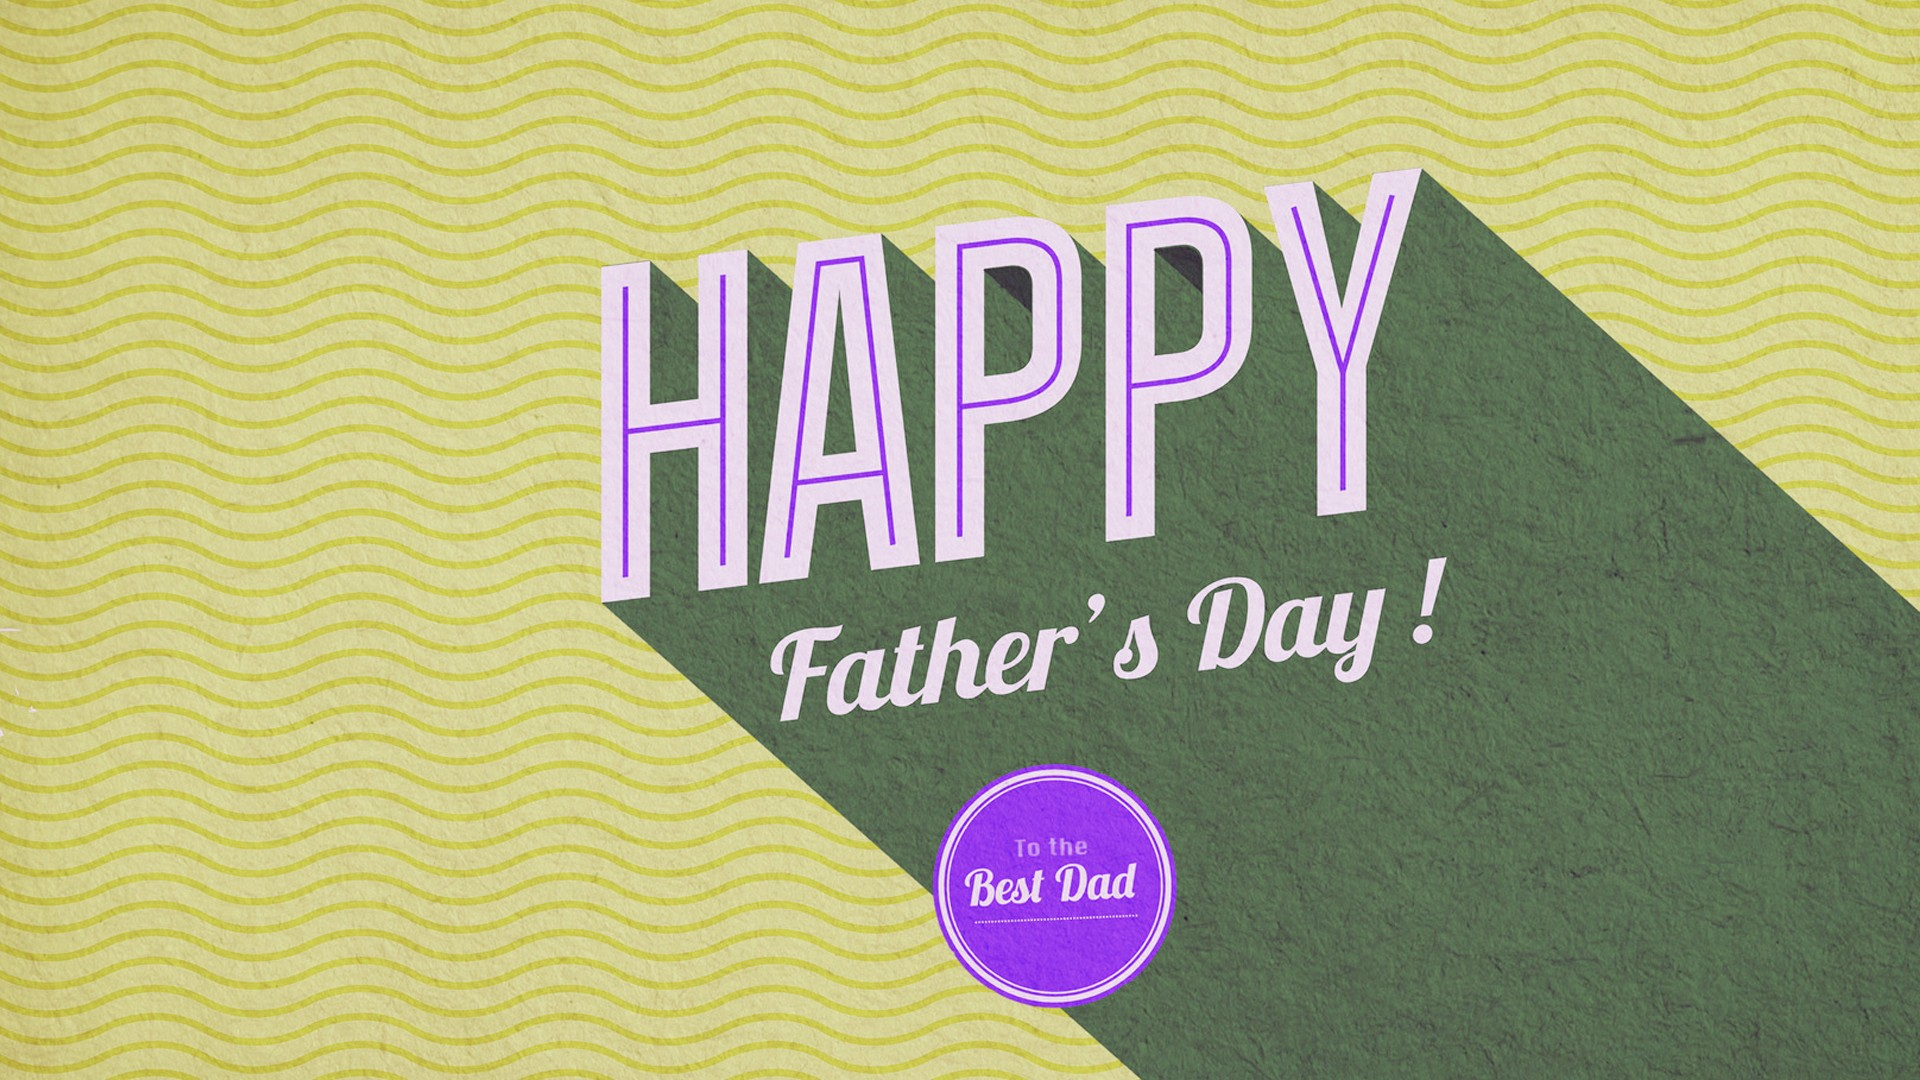 When is Father's Day 2015 and why we celebrate it?